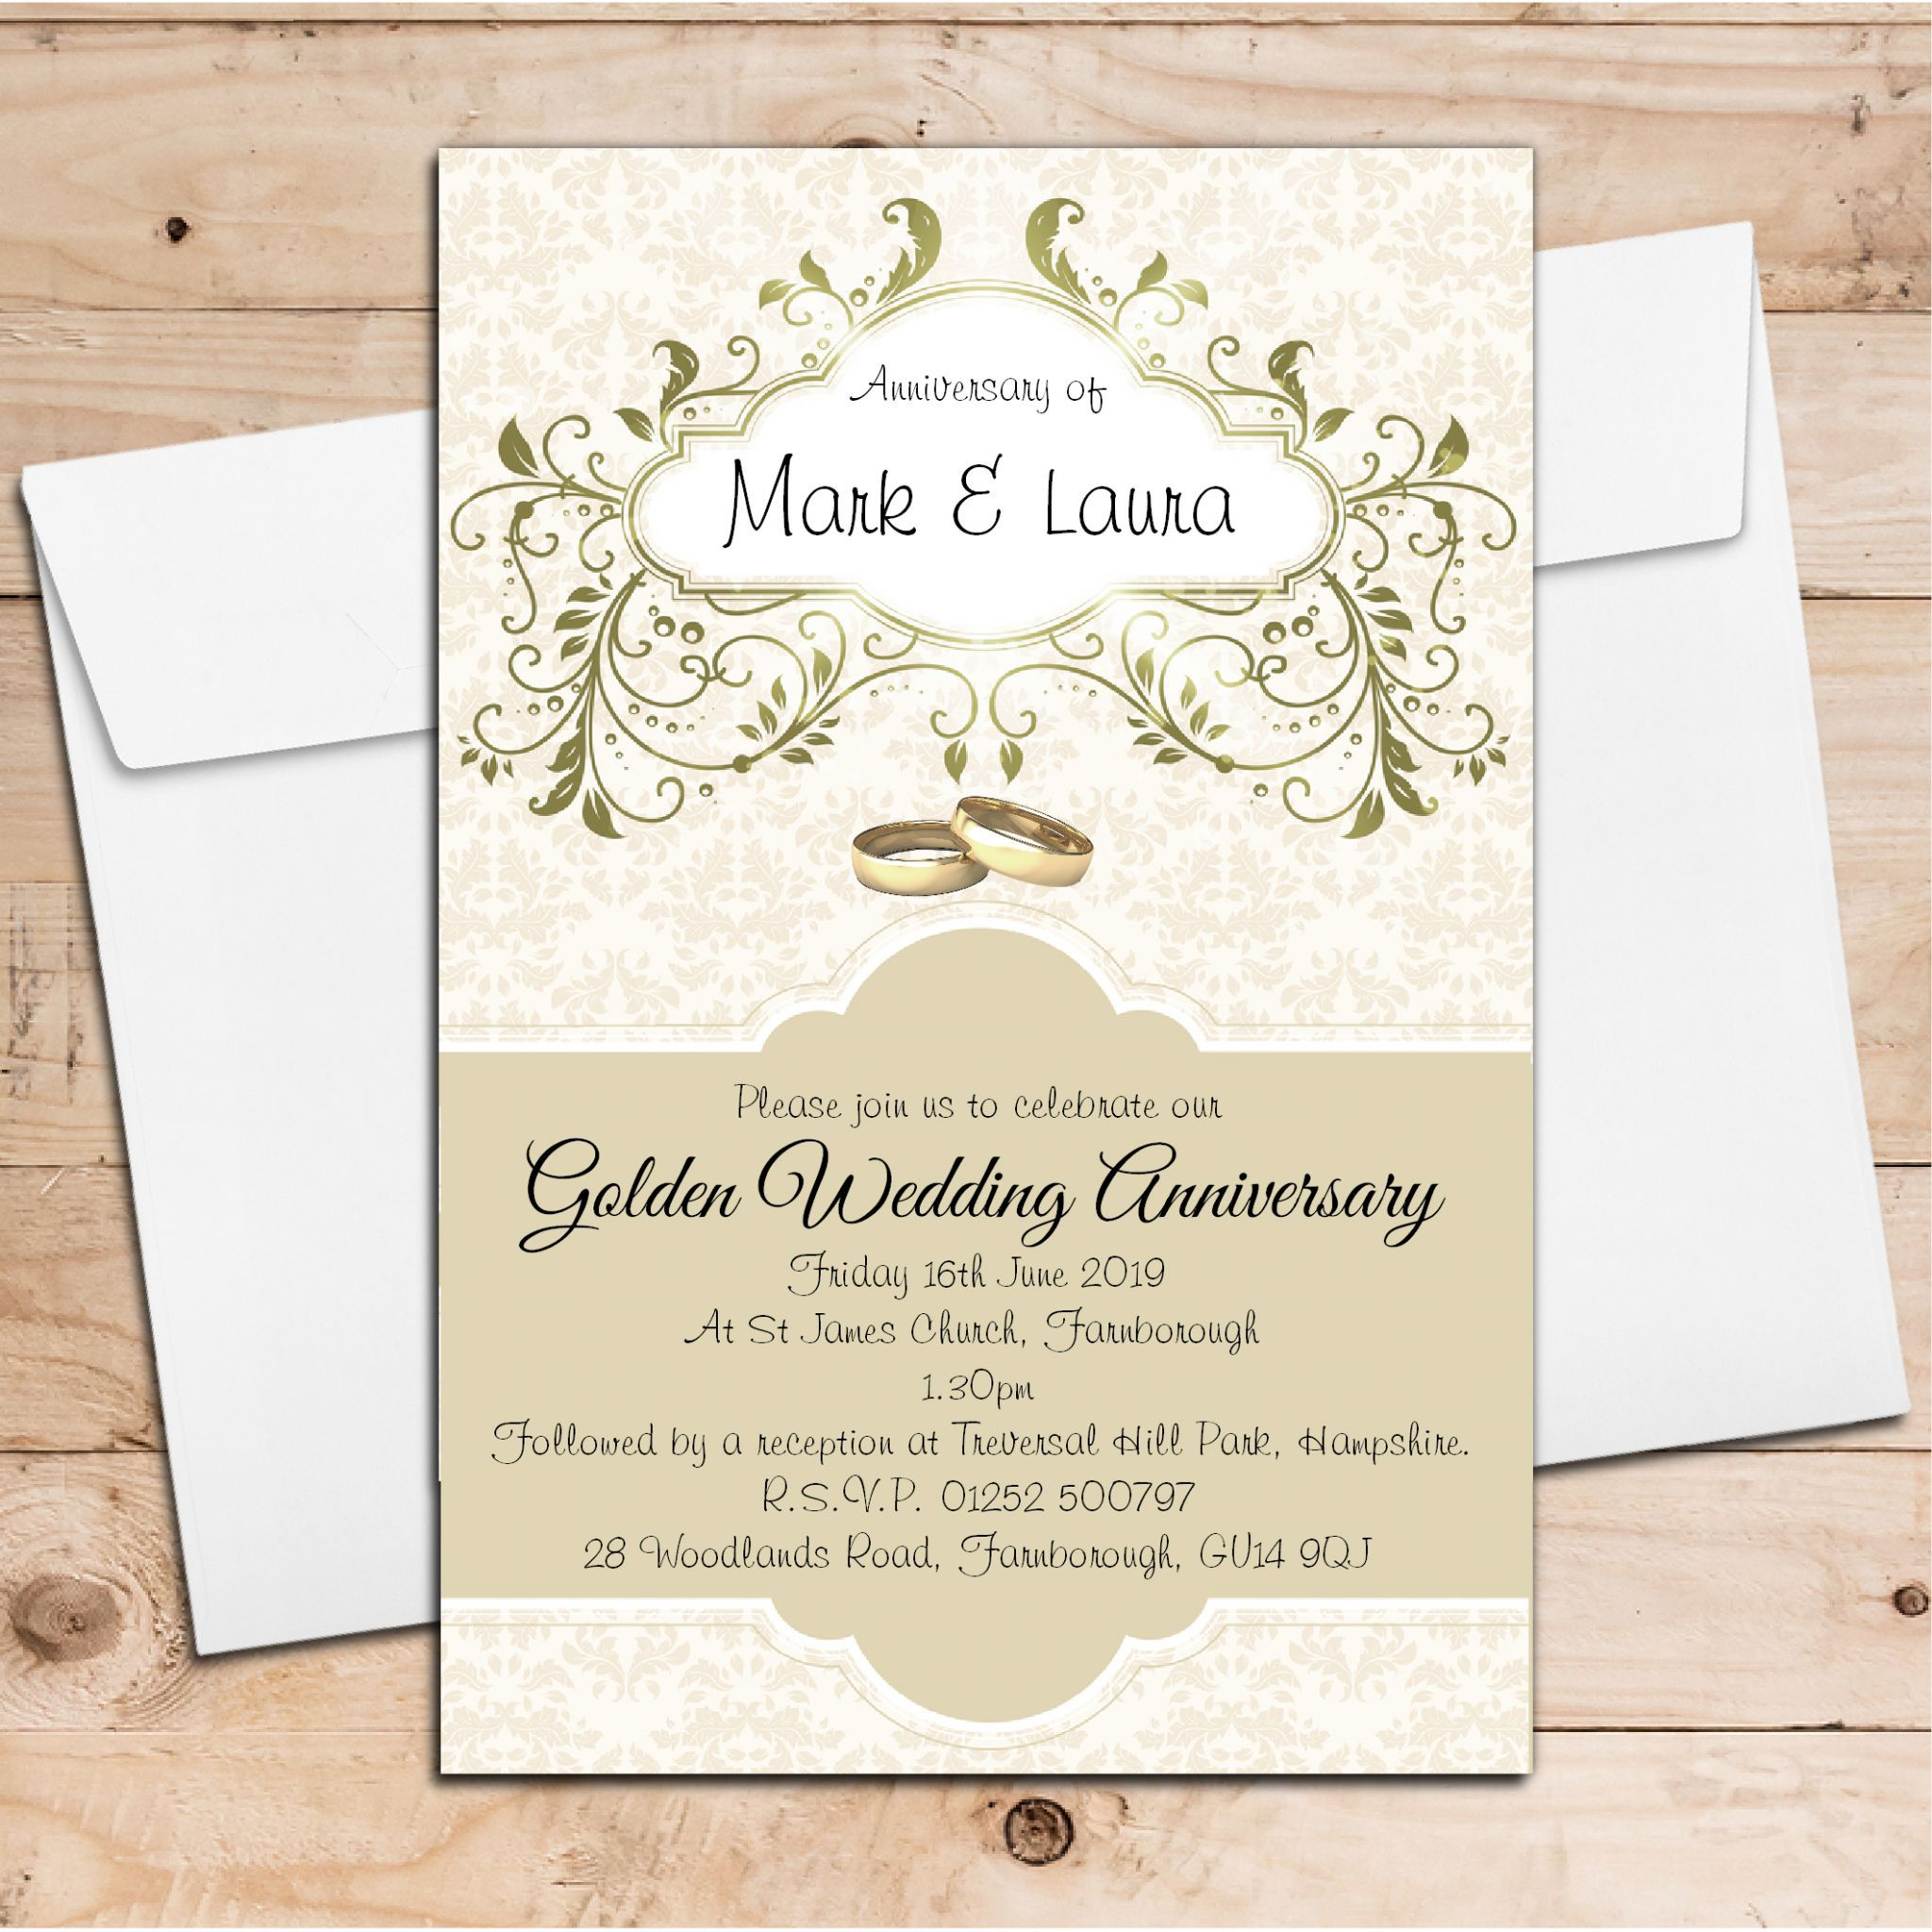 000 Unbelievable 50th Wedding Anniversary Invitation Design Highest Quality  Designs Wording Sample Card Template Free DownloadFull